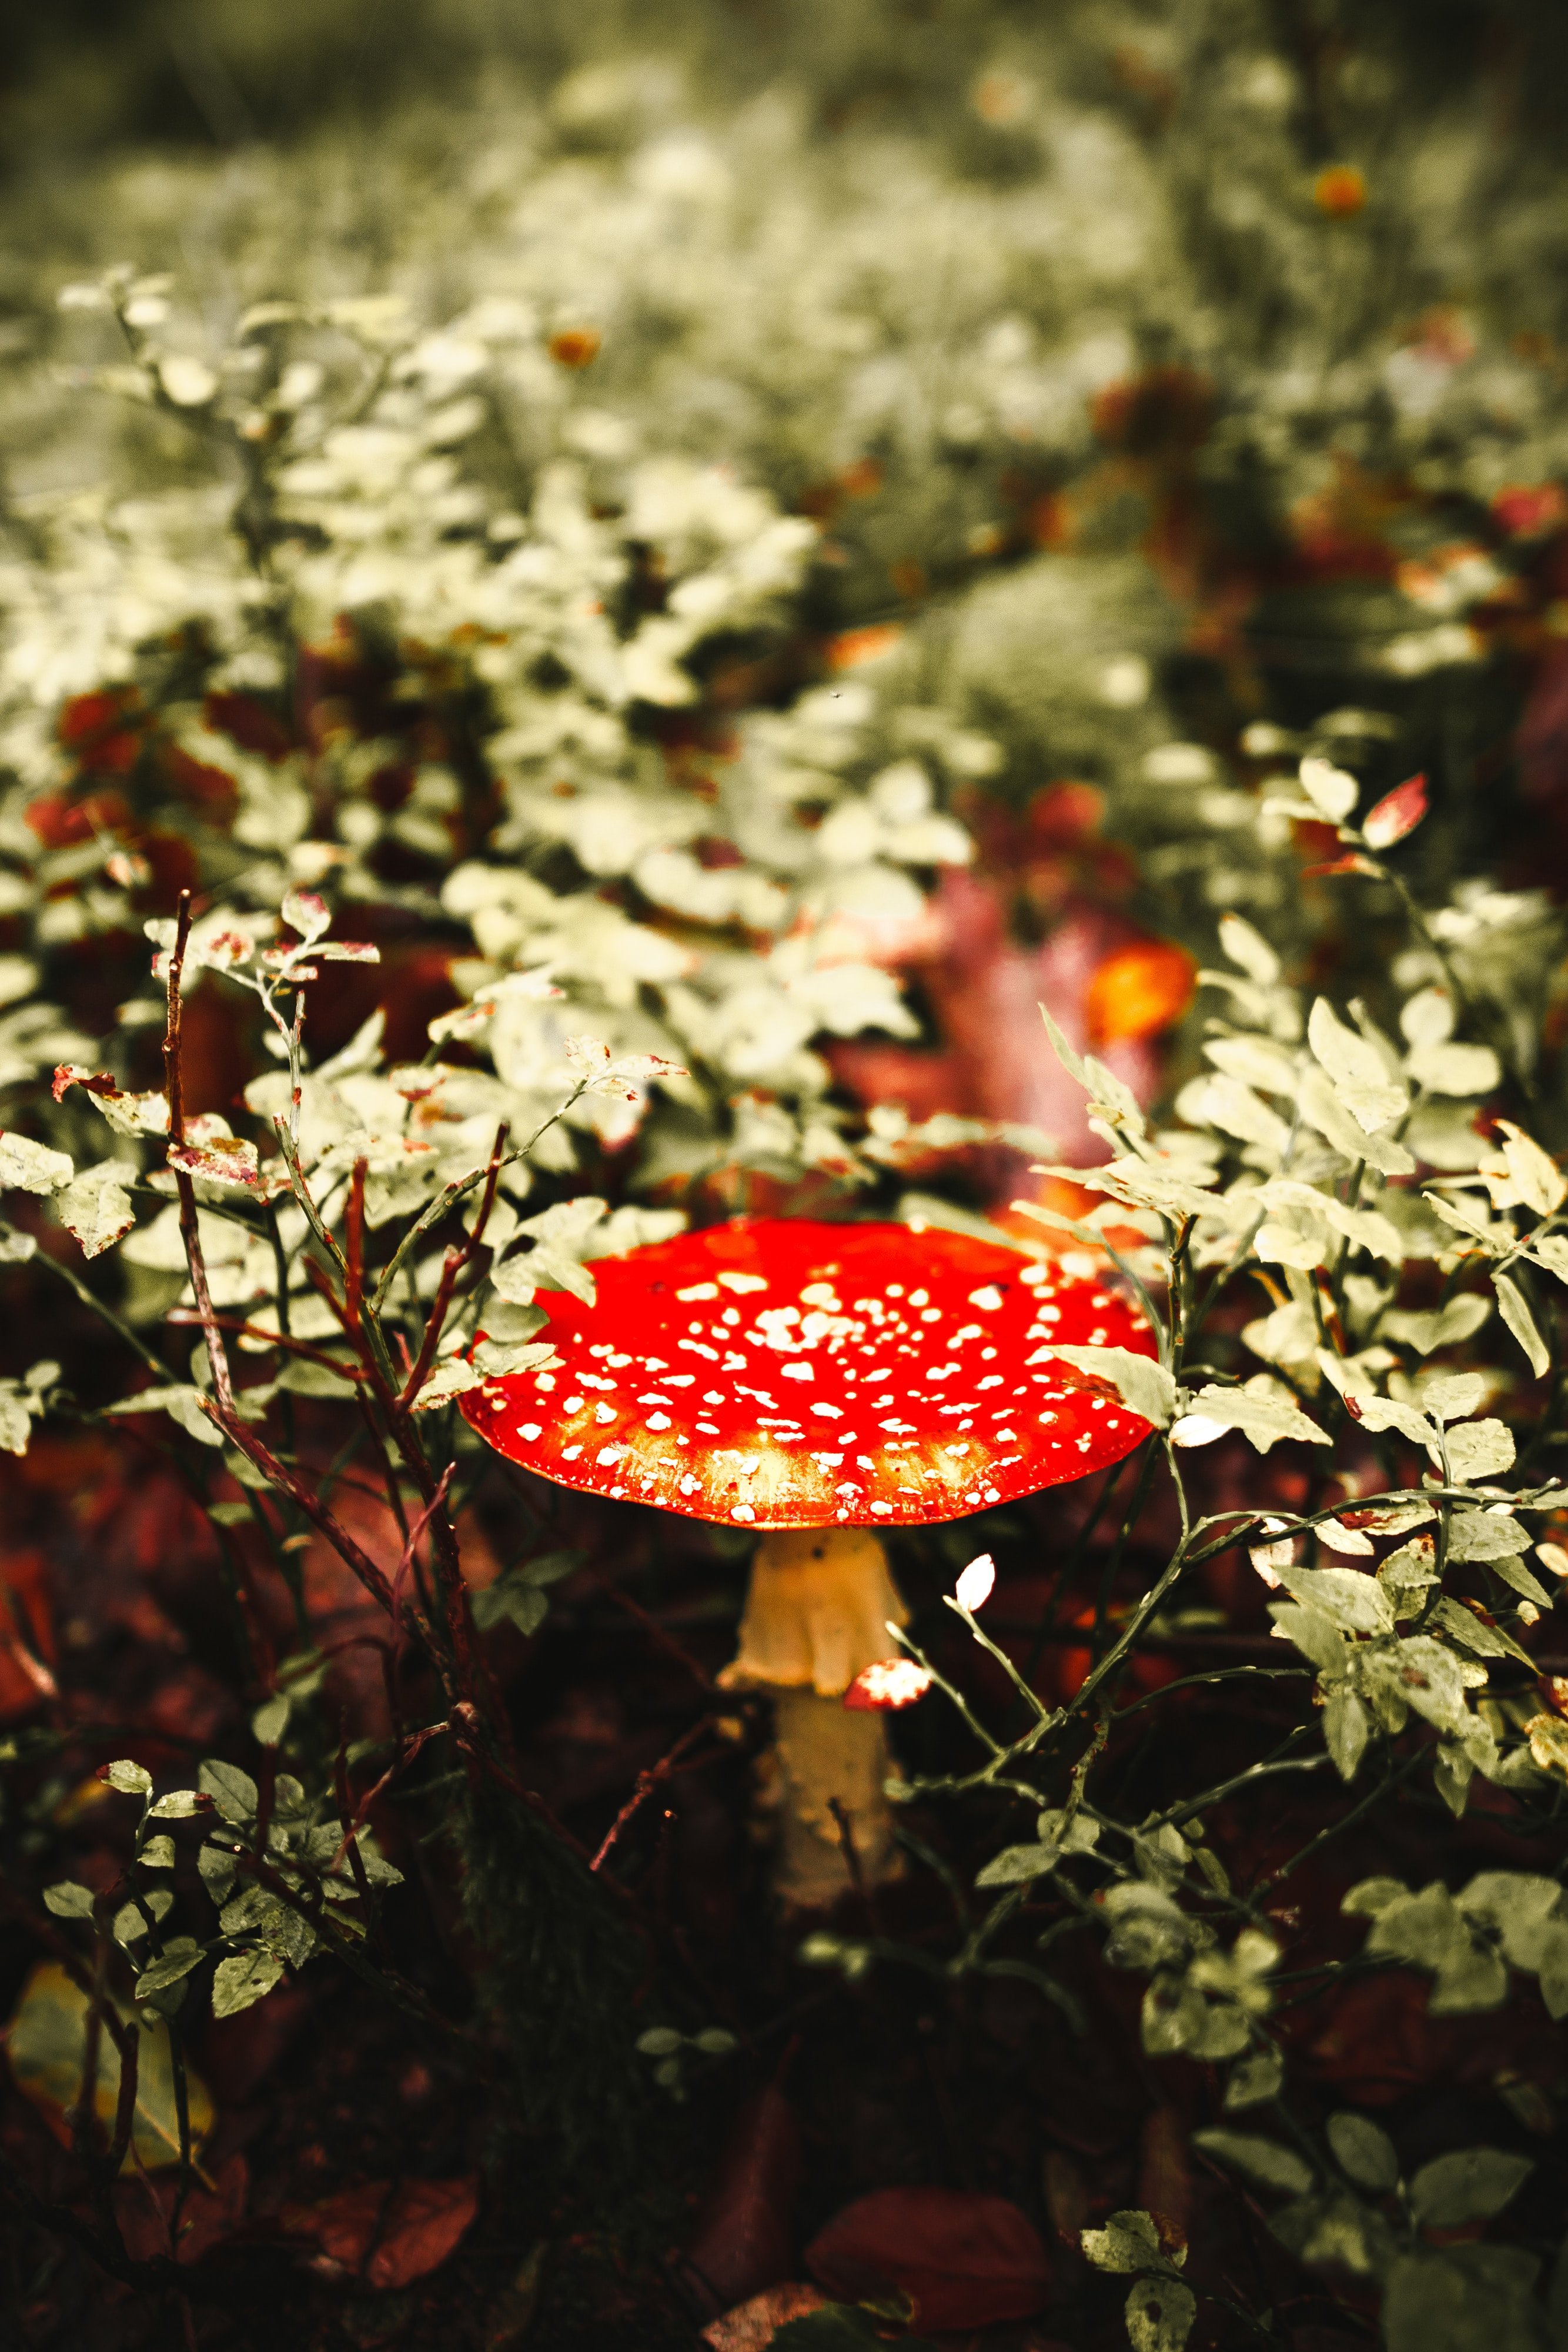 110098 download wallpaper Macro, Fly Agaric, Mushroom, Spotted, Spotty screensavers and pictures for free